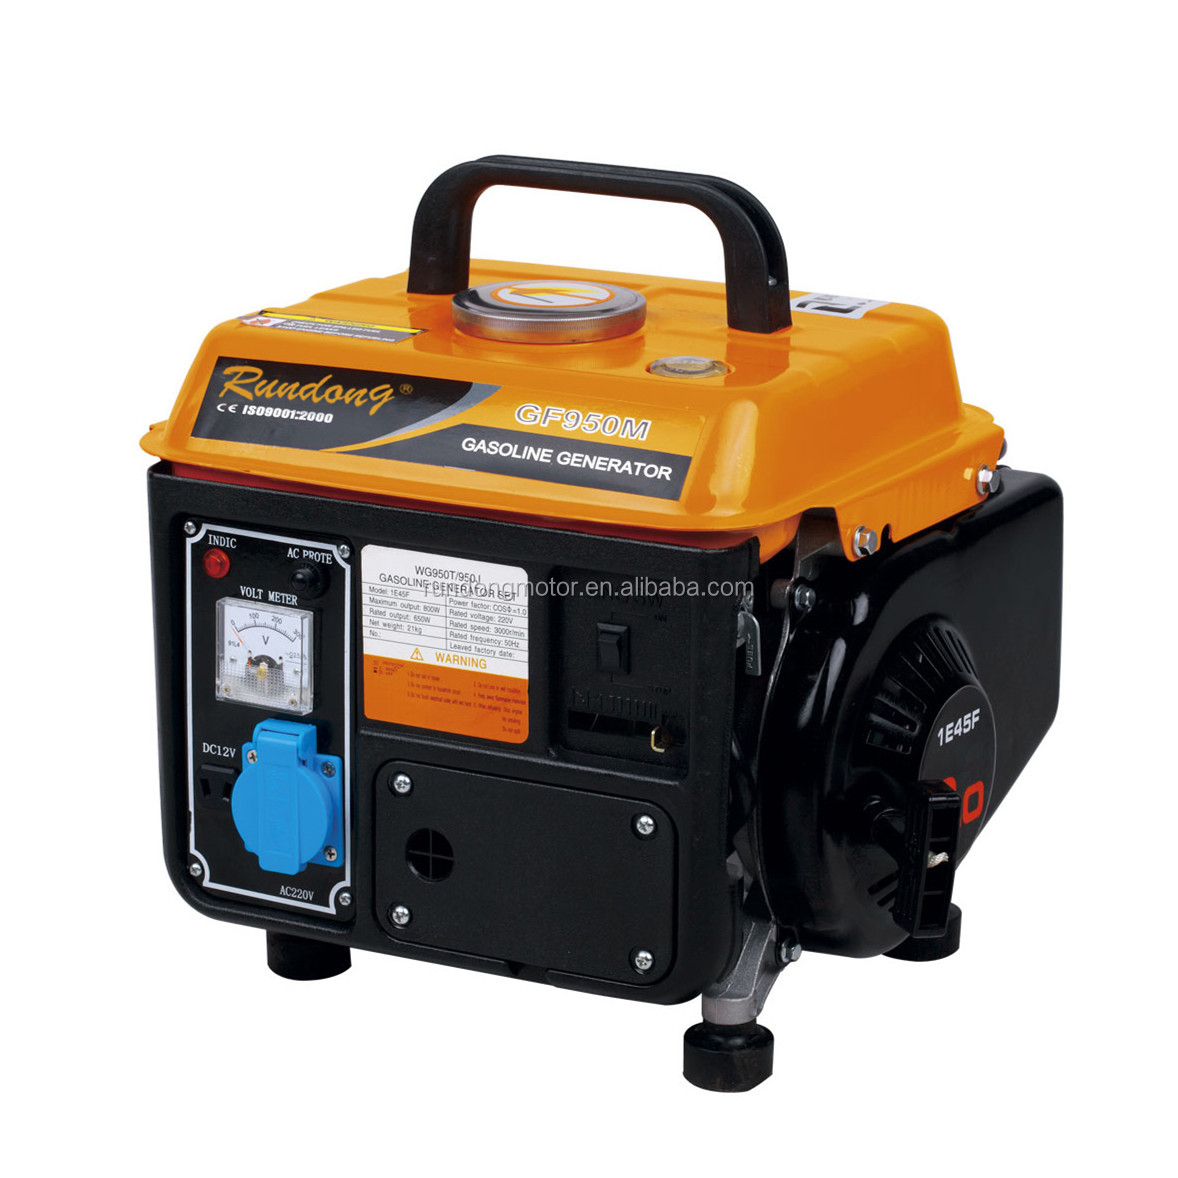 700w Portable Generator 700w Portable Generator Suppliers And Manufacturers At Alibaba Com